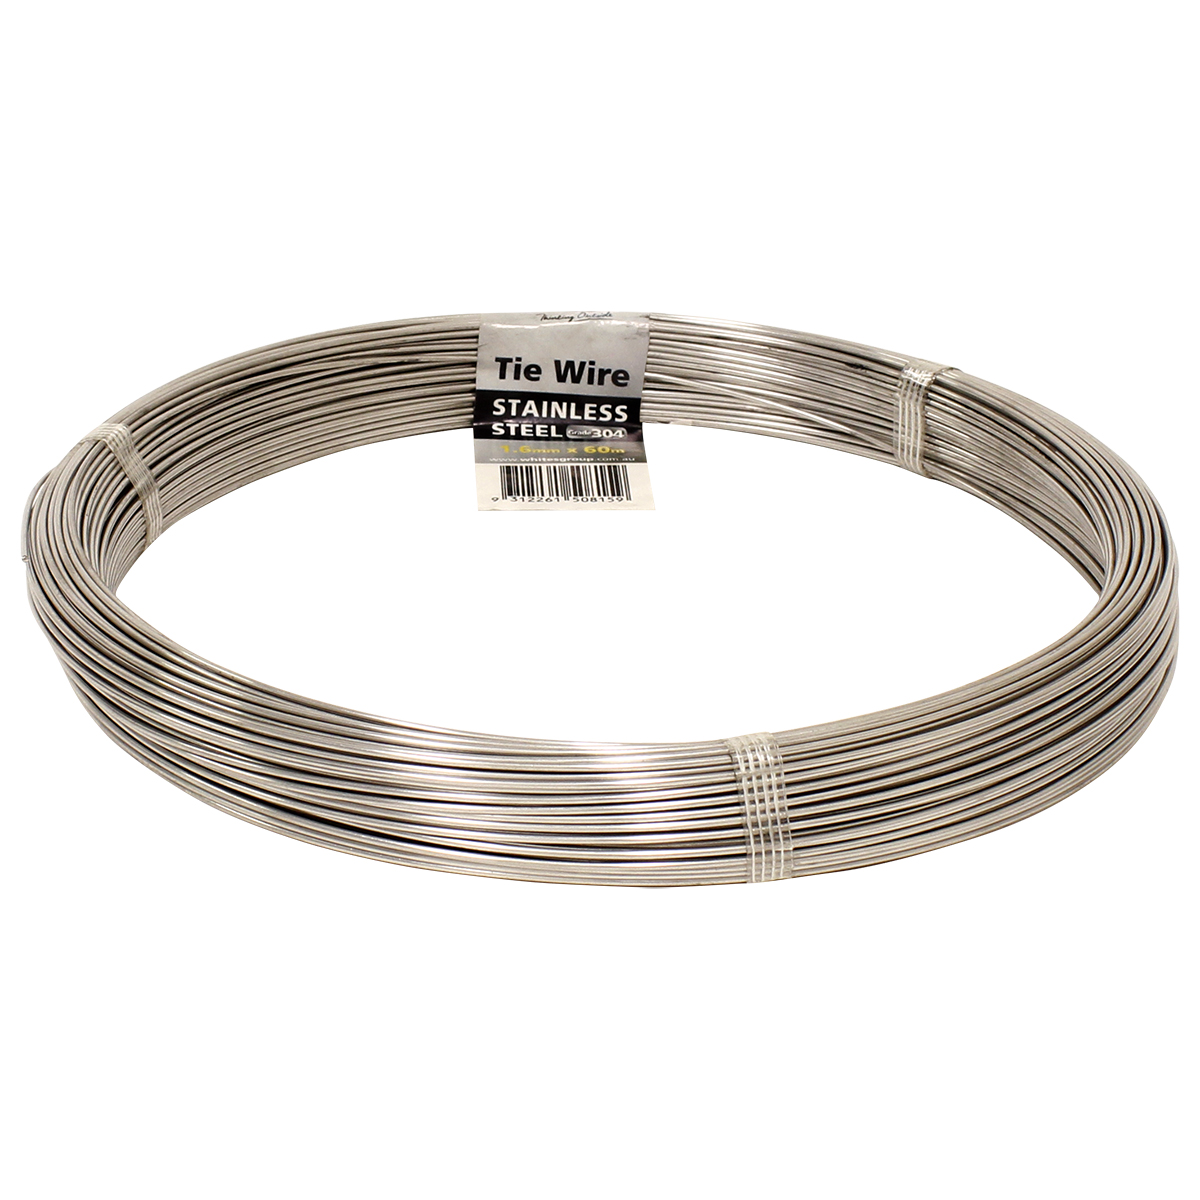 50815 - Tie Wire S Steel-1.6mm x 60m